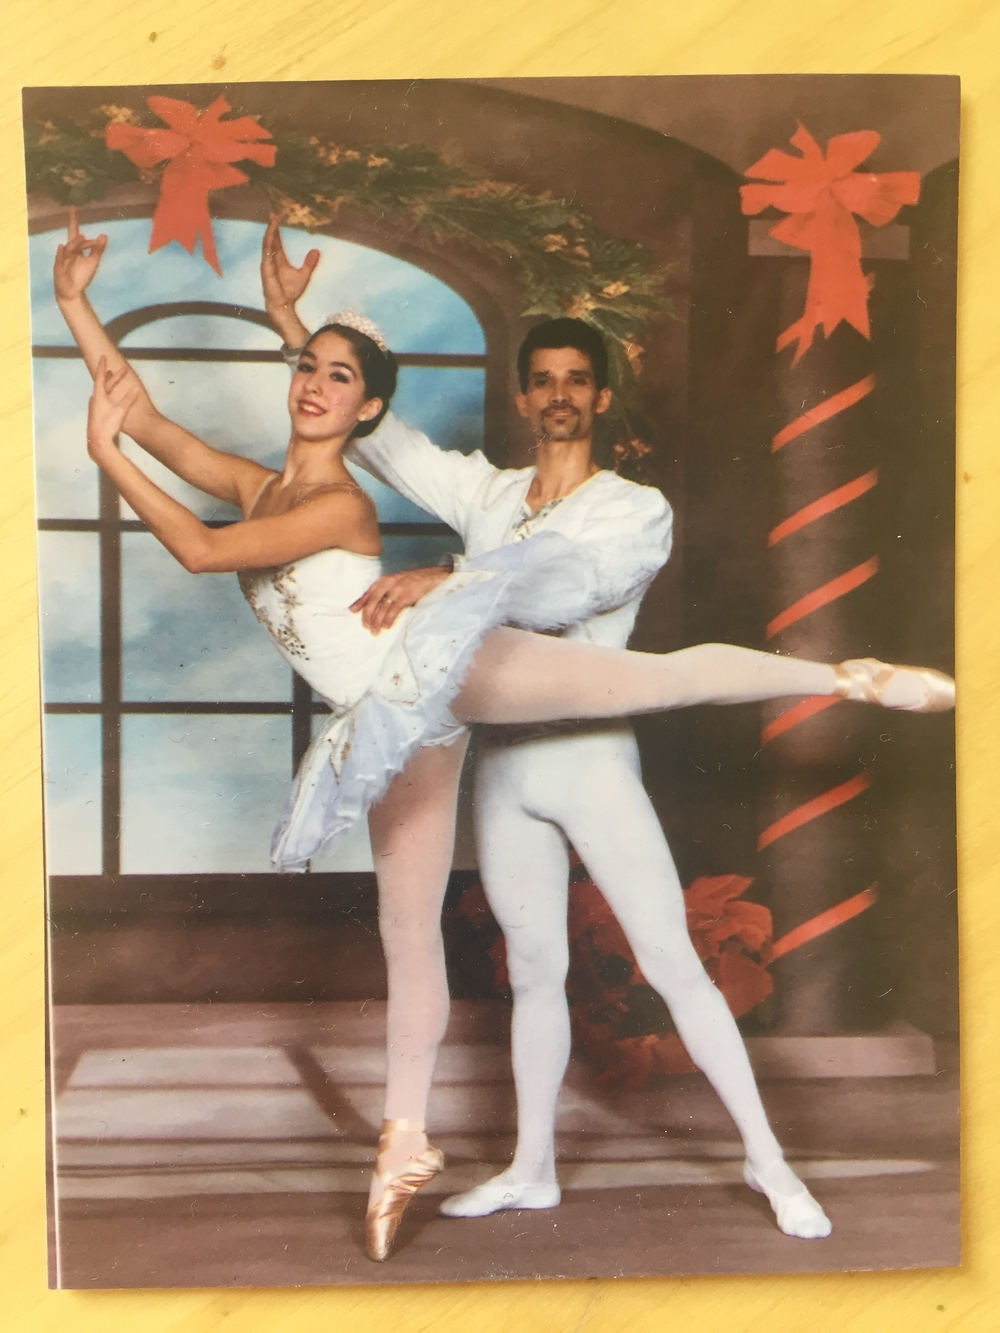 A 14-year-old Natalie Tapias pictured as the Snow Queen in The Nutcracker at the Vancouver Dance Theater in December 2002.